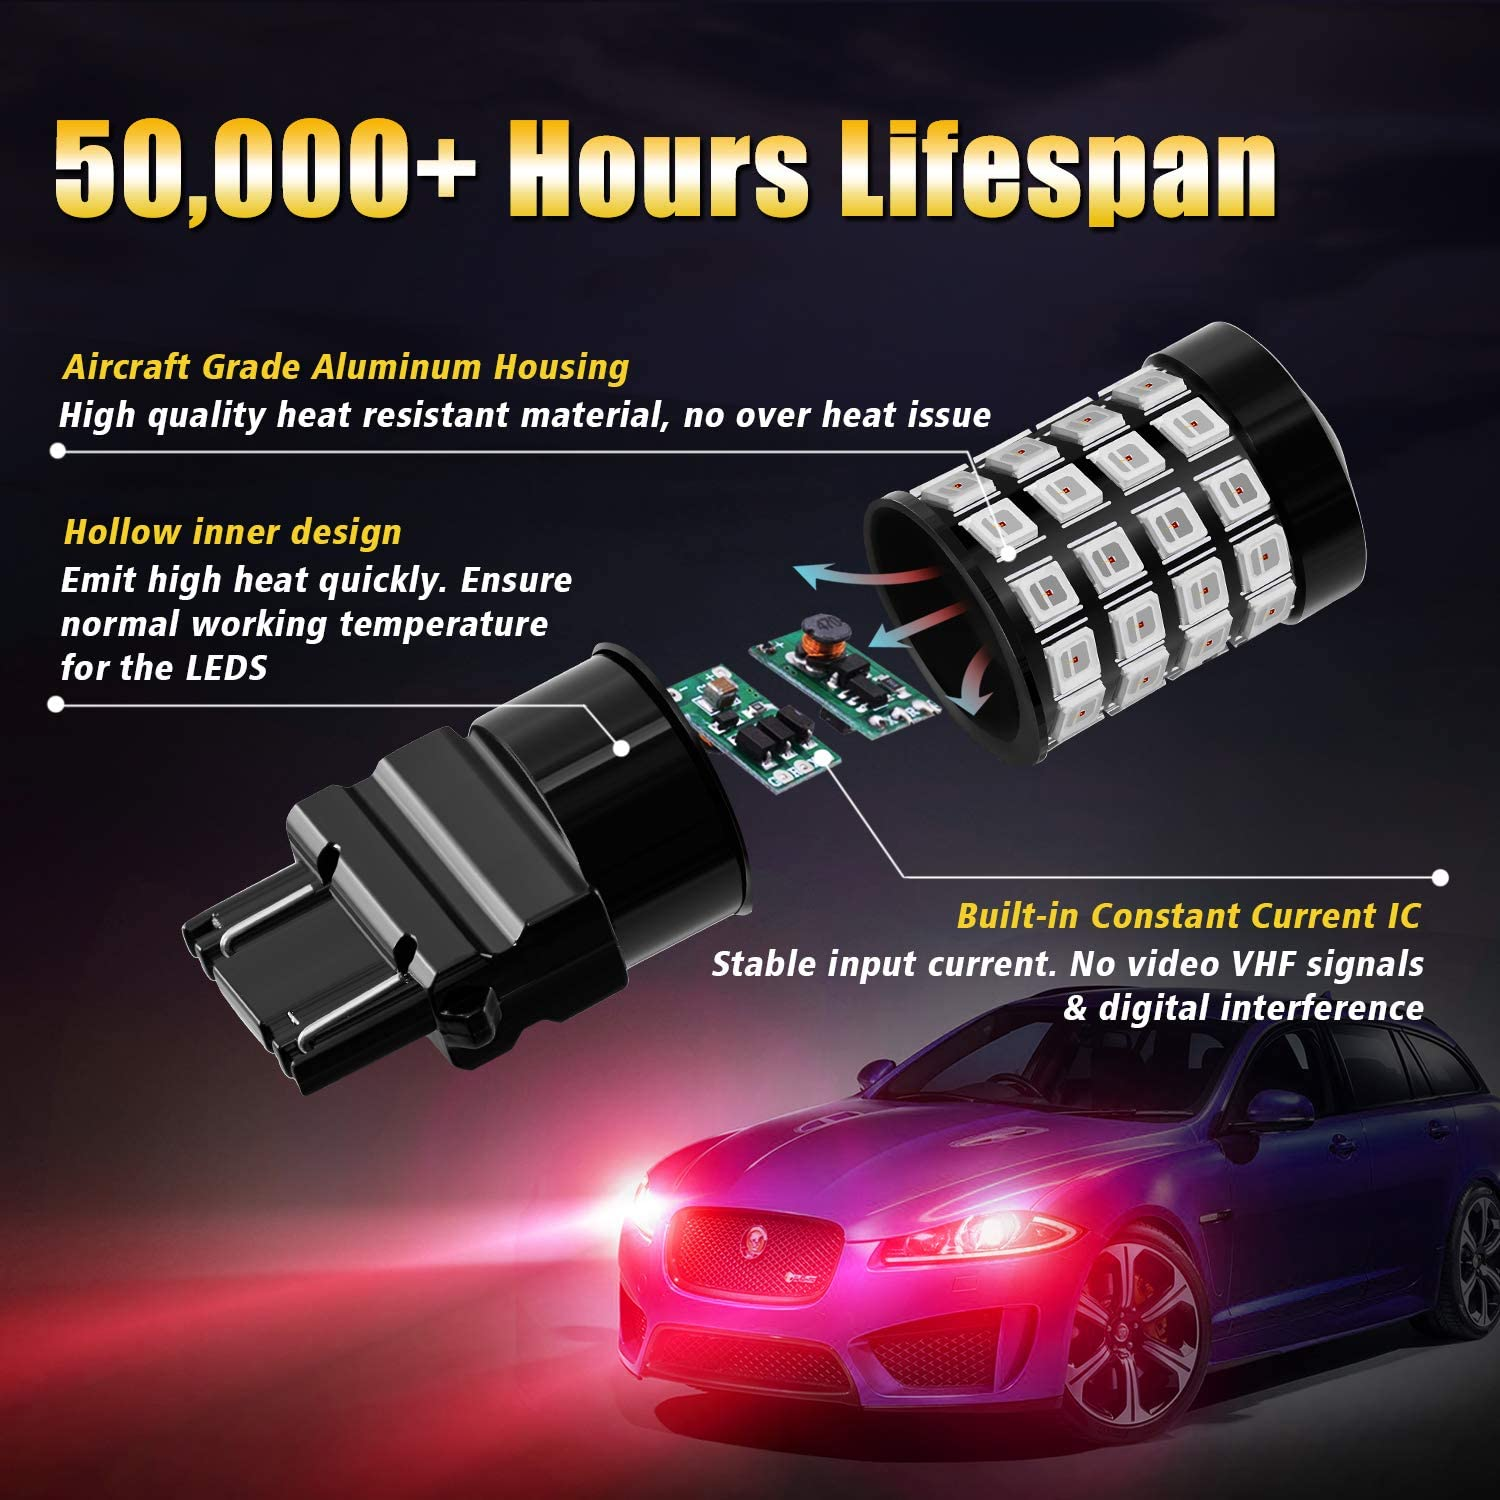 Pack of 2 BRISHINE 3157 3156 3056 3057 3457 4157 4057 LED Flashing Strobe Blinking Brake Light Bulbs Brilliant Red Super Bright 52-SMD Chipsets LED Bulbs with Projector for Tail Stop Lights